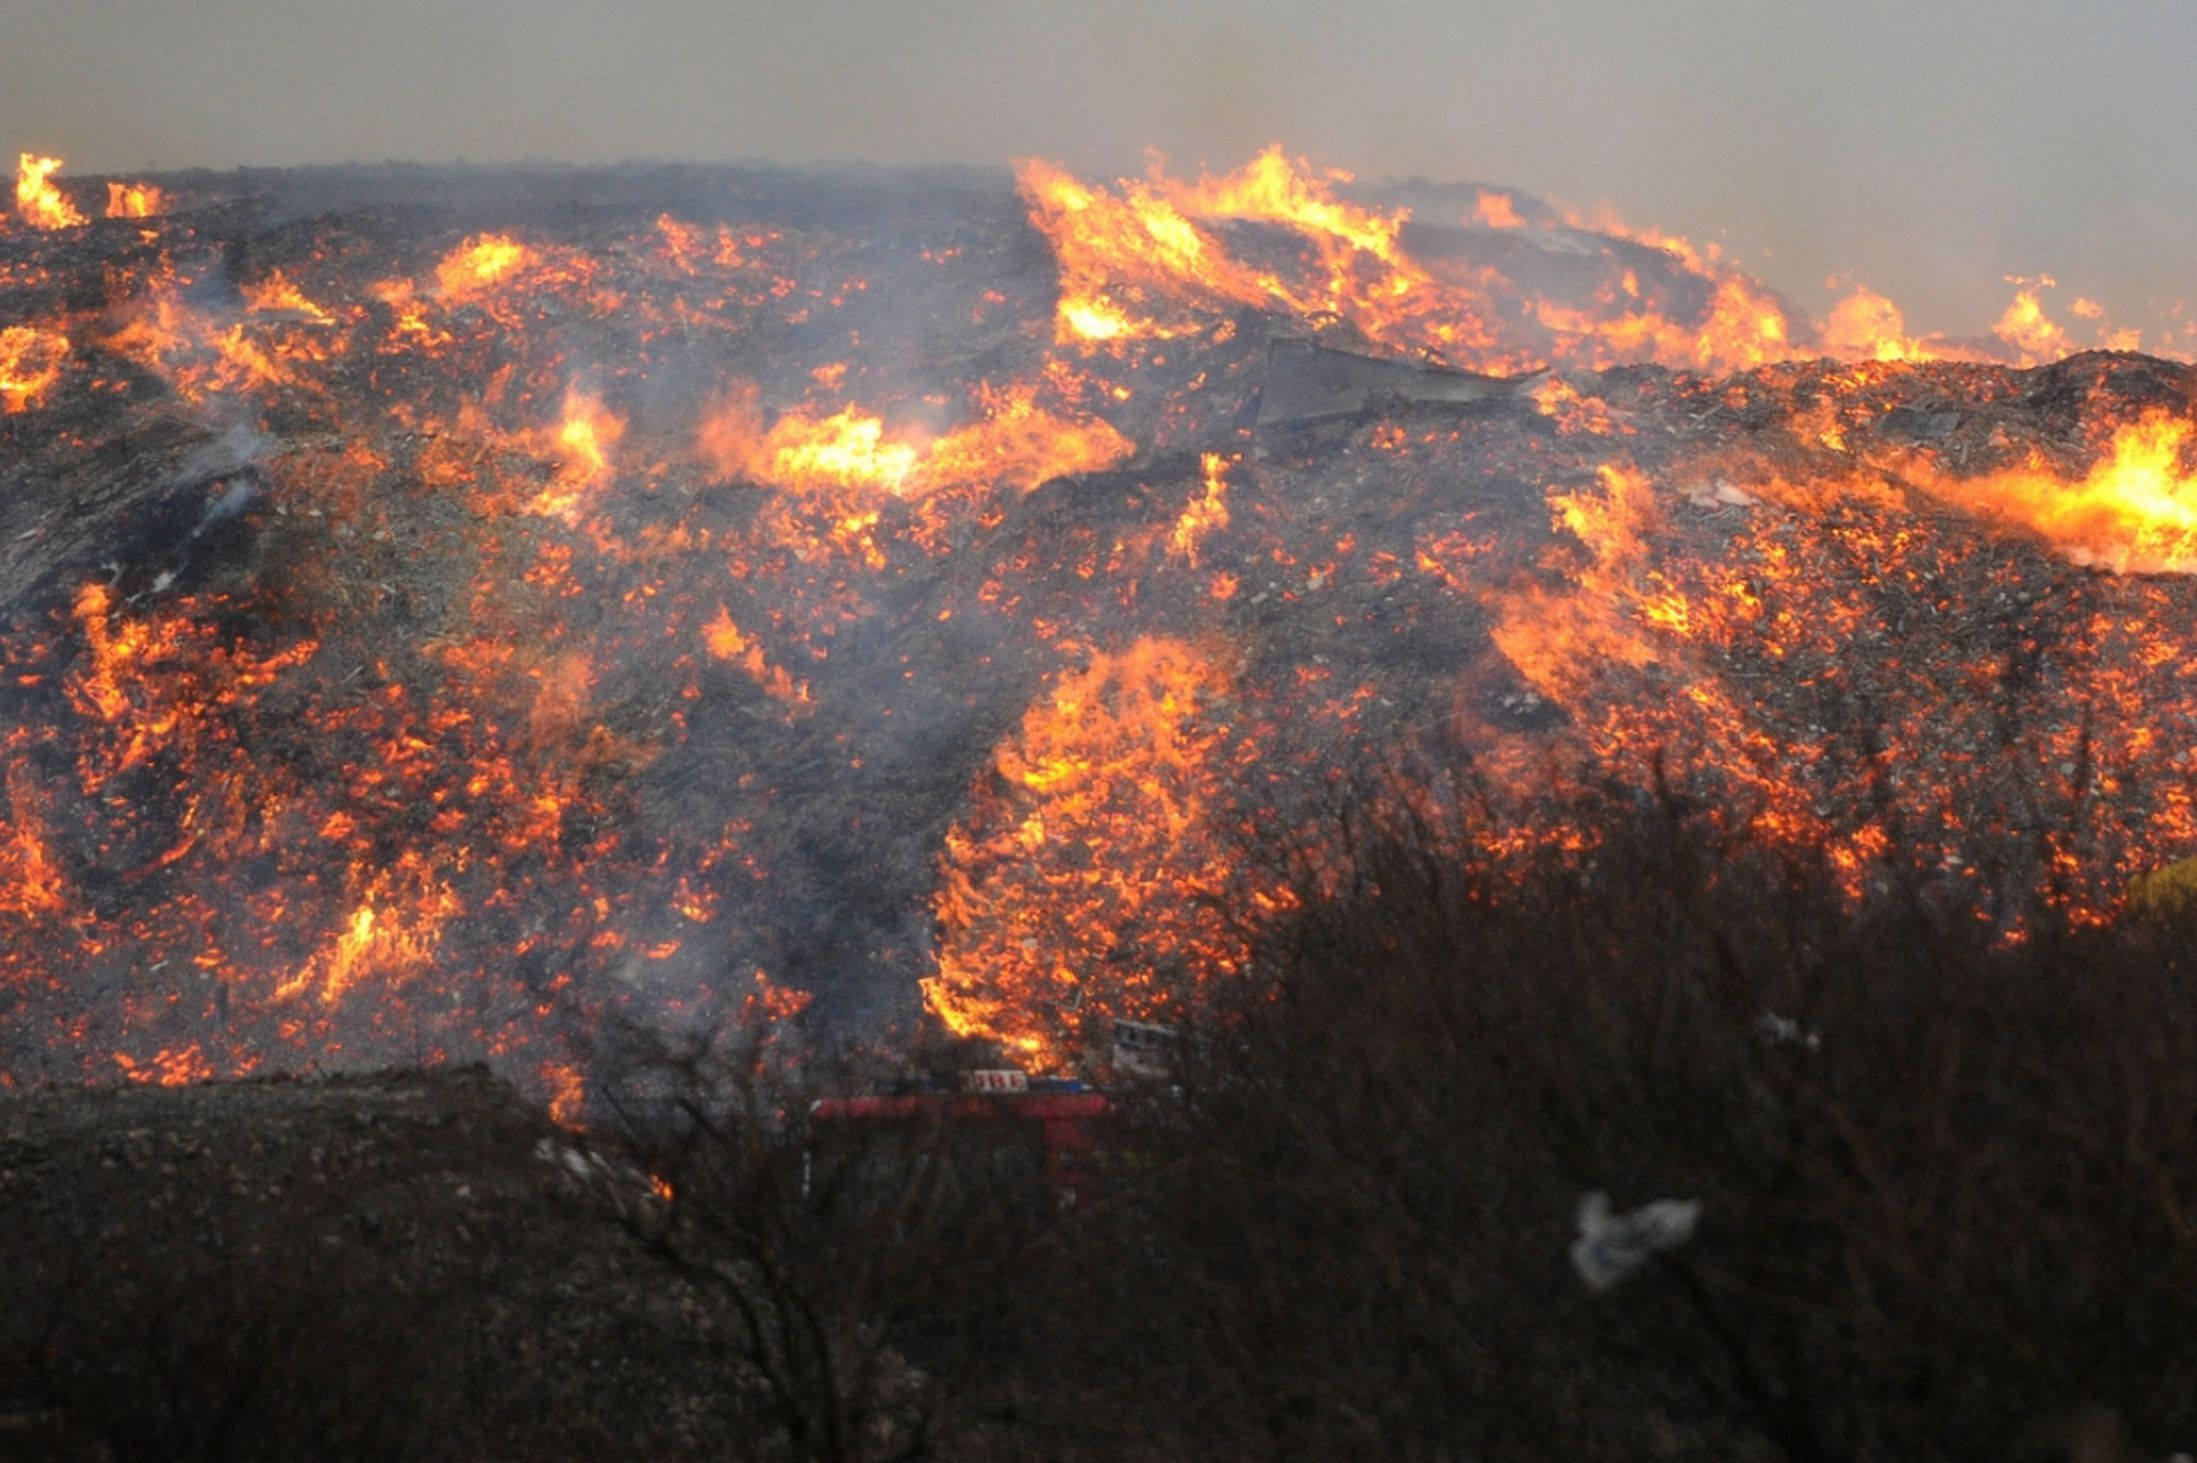 Fire from recycling plant